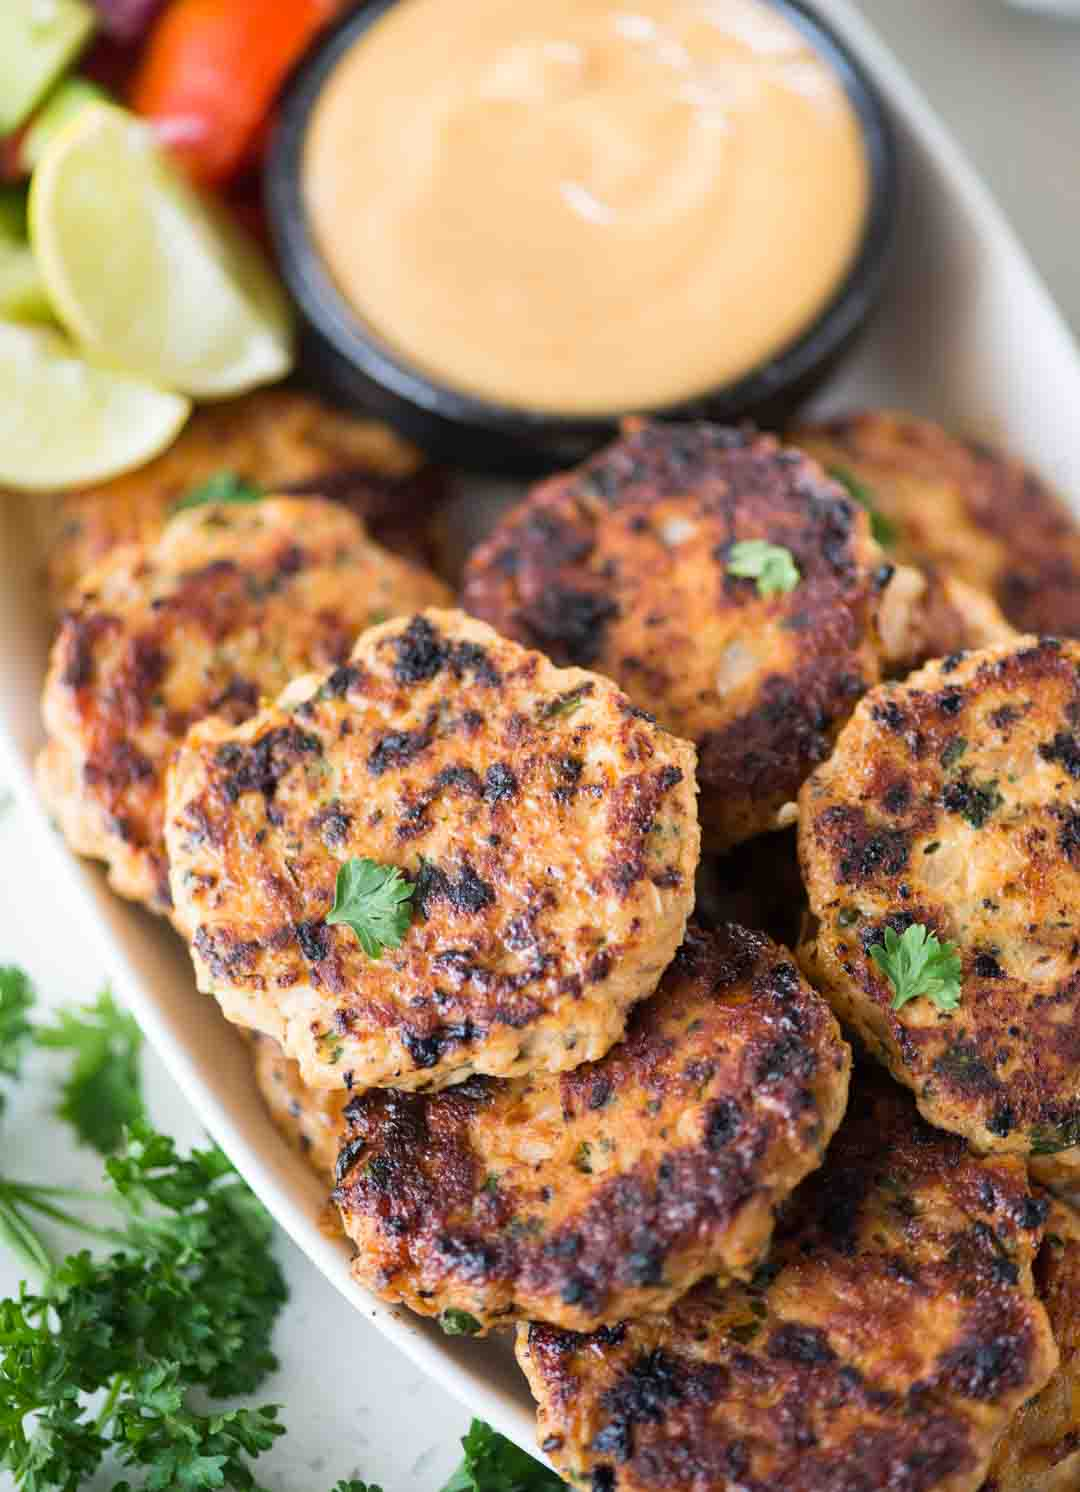 Juicy Chicken patties are easy and quick to make. Mildy spicy, flavourful and perfect to use in burgers, wraps, sandwich or serve as a snack as it is.